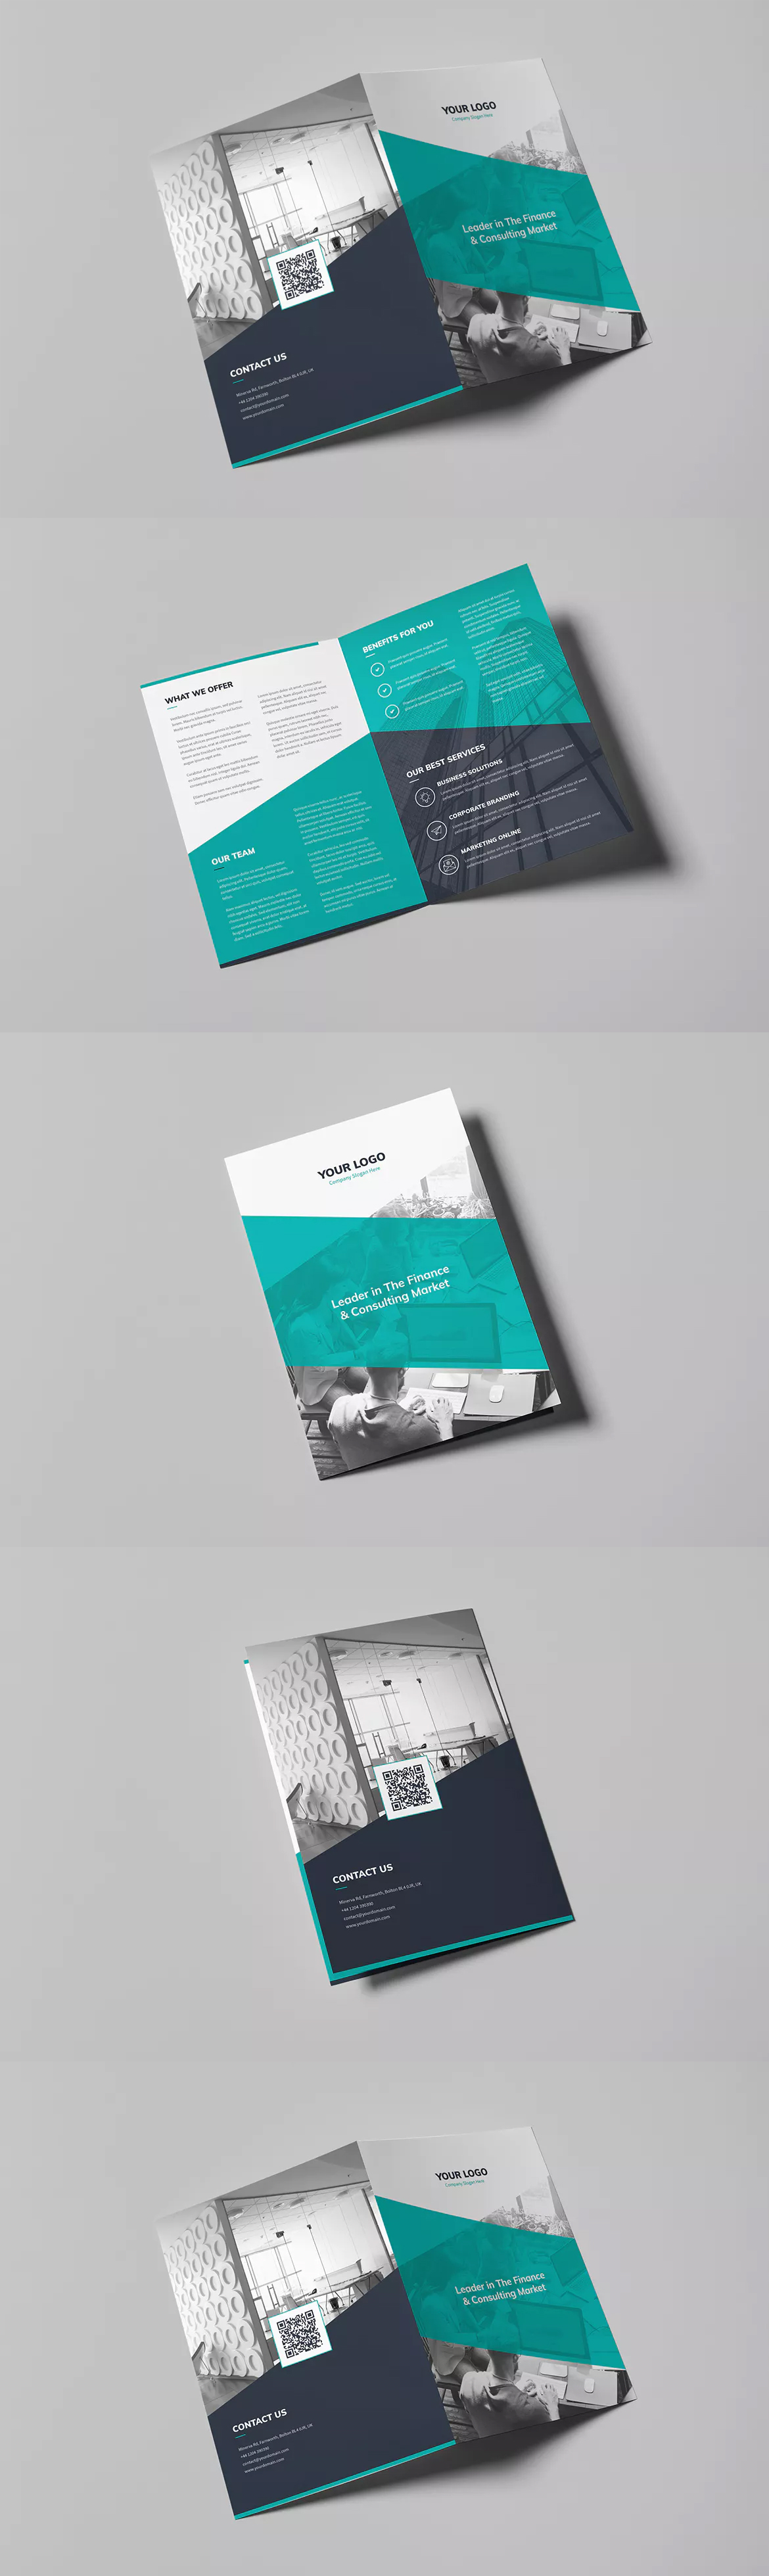 corporate bi fold brochure template psd a4 and us letter size